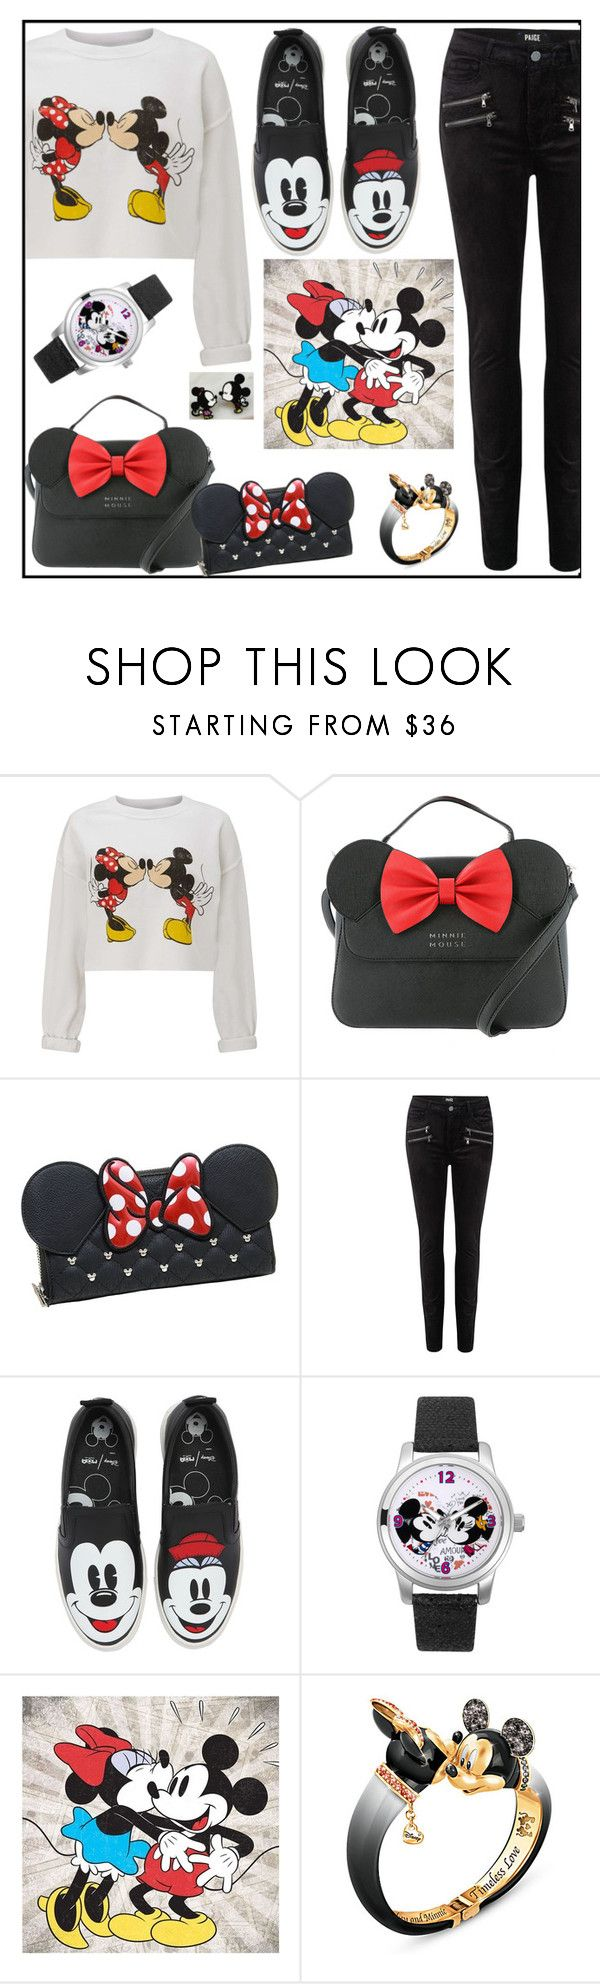 """""""New Disney Sets"""" by tlb0318 on Polyvore featuring Miss Selfridge, Loungefly, Paige Denim, MOA Master of Arts, Disney, Artissimo and The Bradford Exchange"""